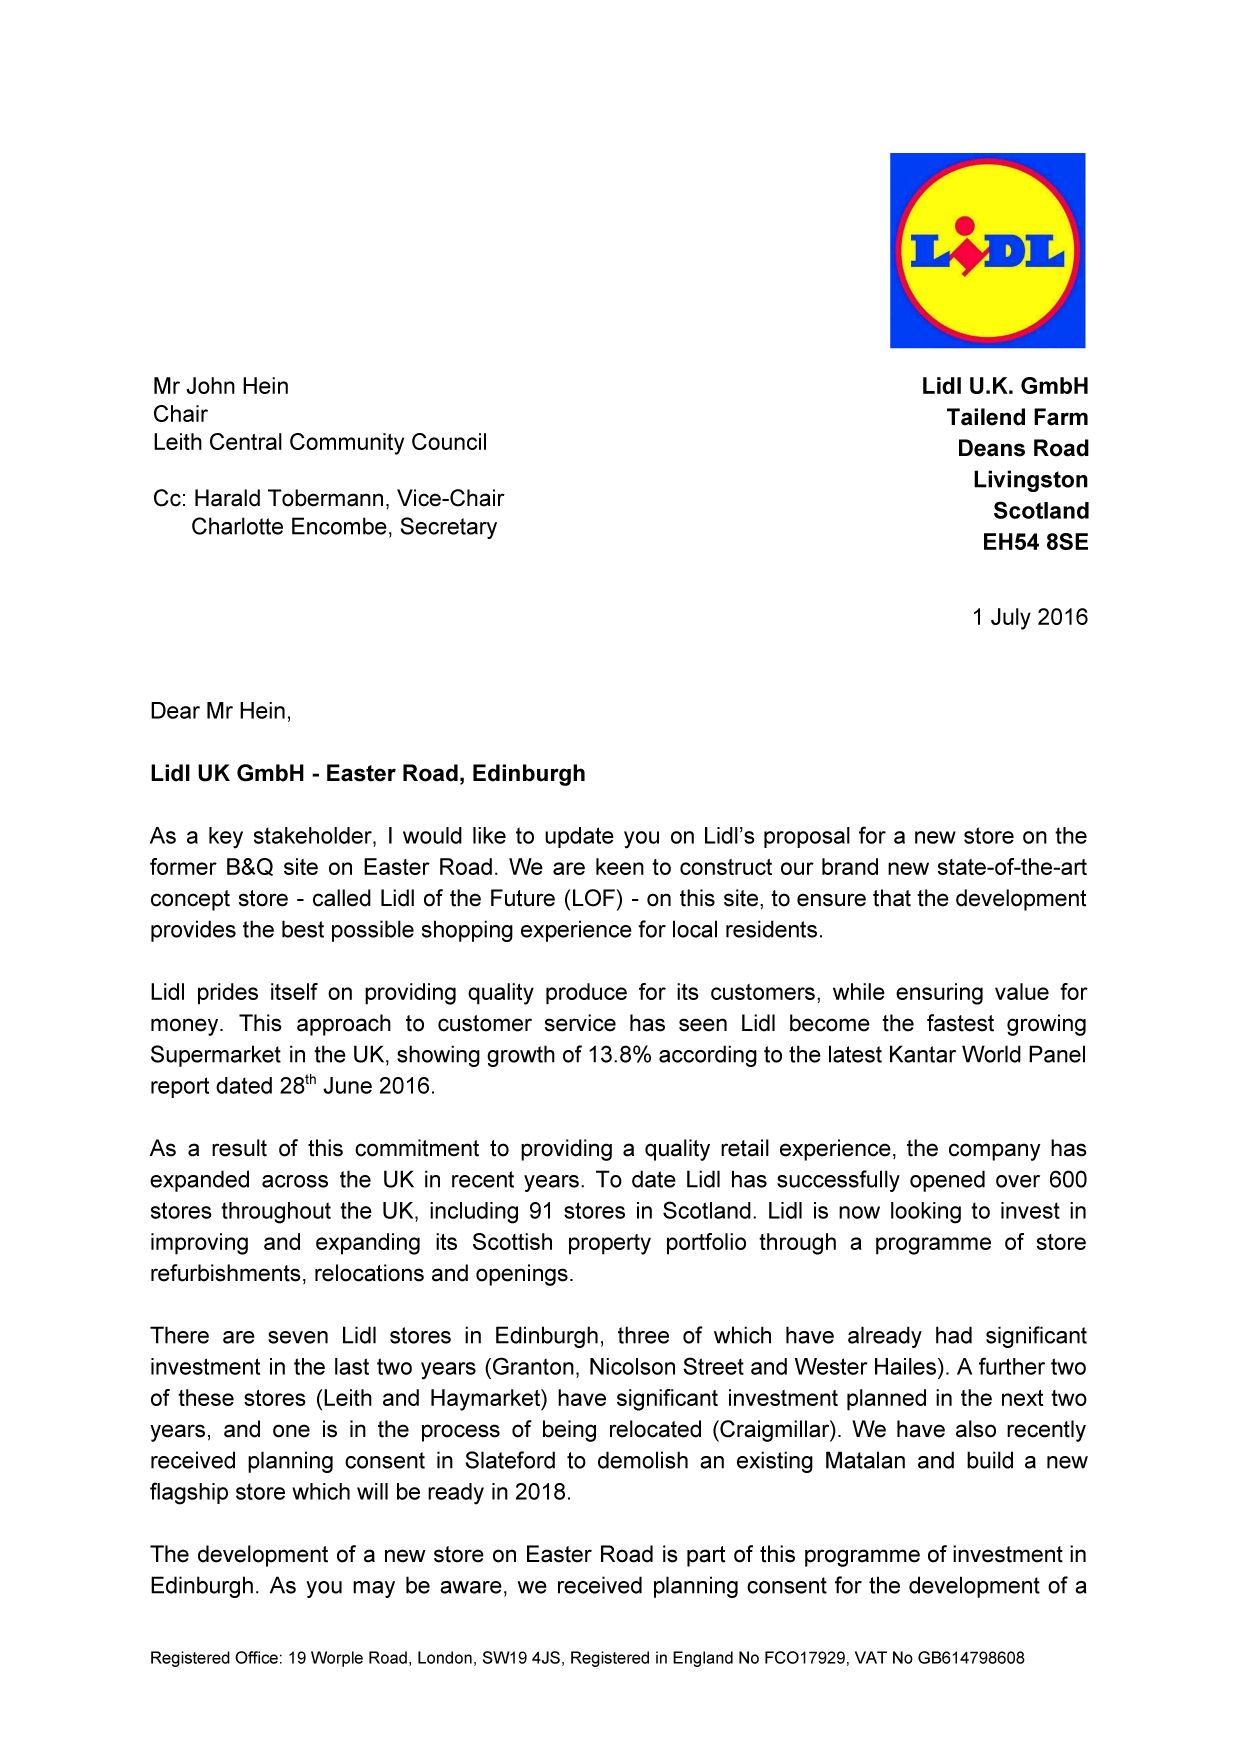 Cover Letter Template Lidl Cover Letter Template Letter Templates Cover Letter Template Free